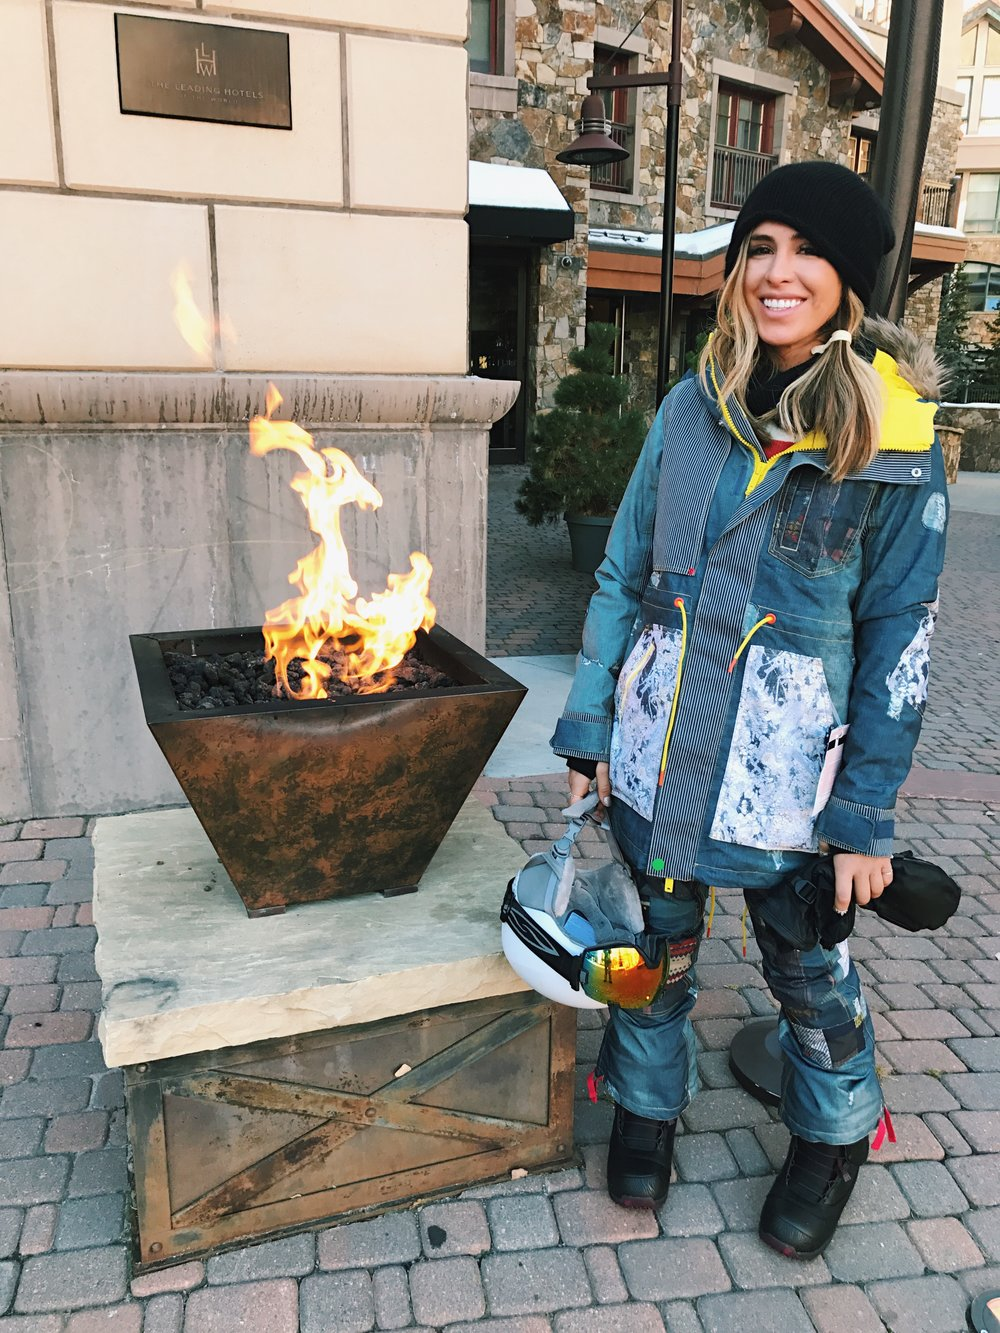 Kelley Fertitta in a snoboarding outfit